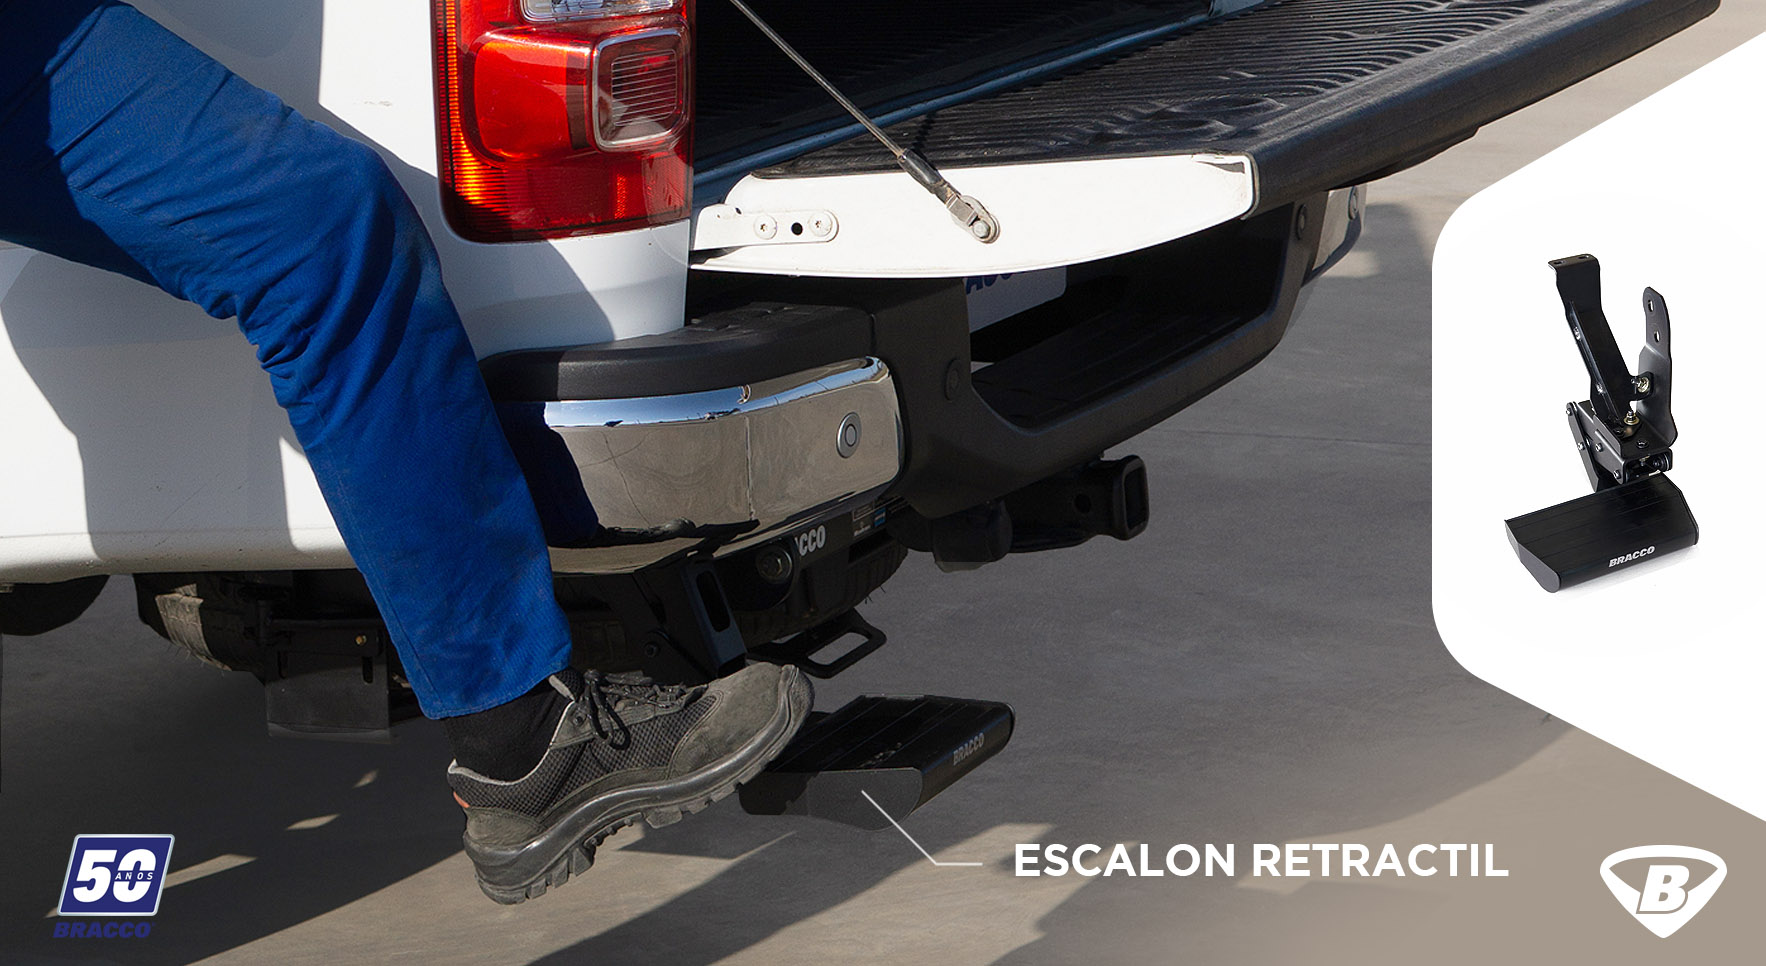 escalon retractil bracco